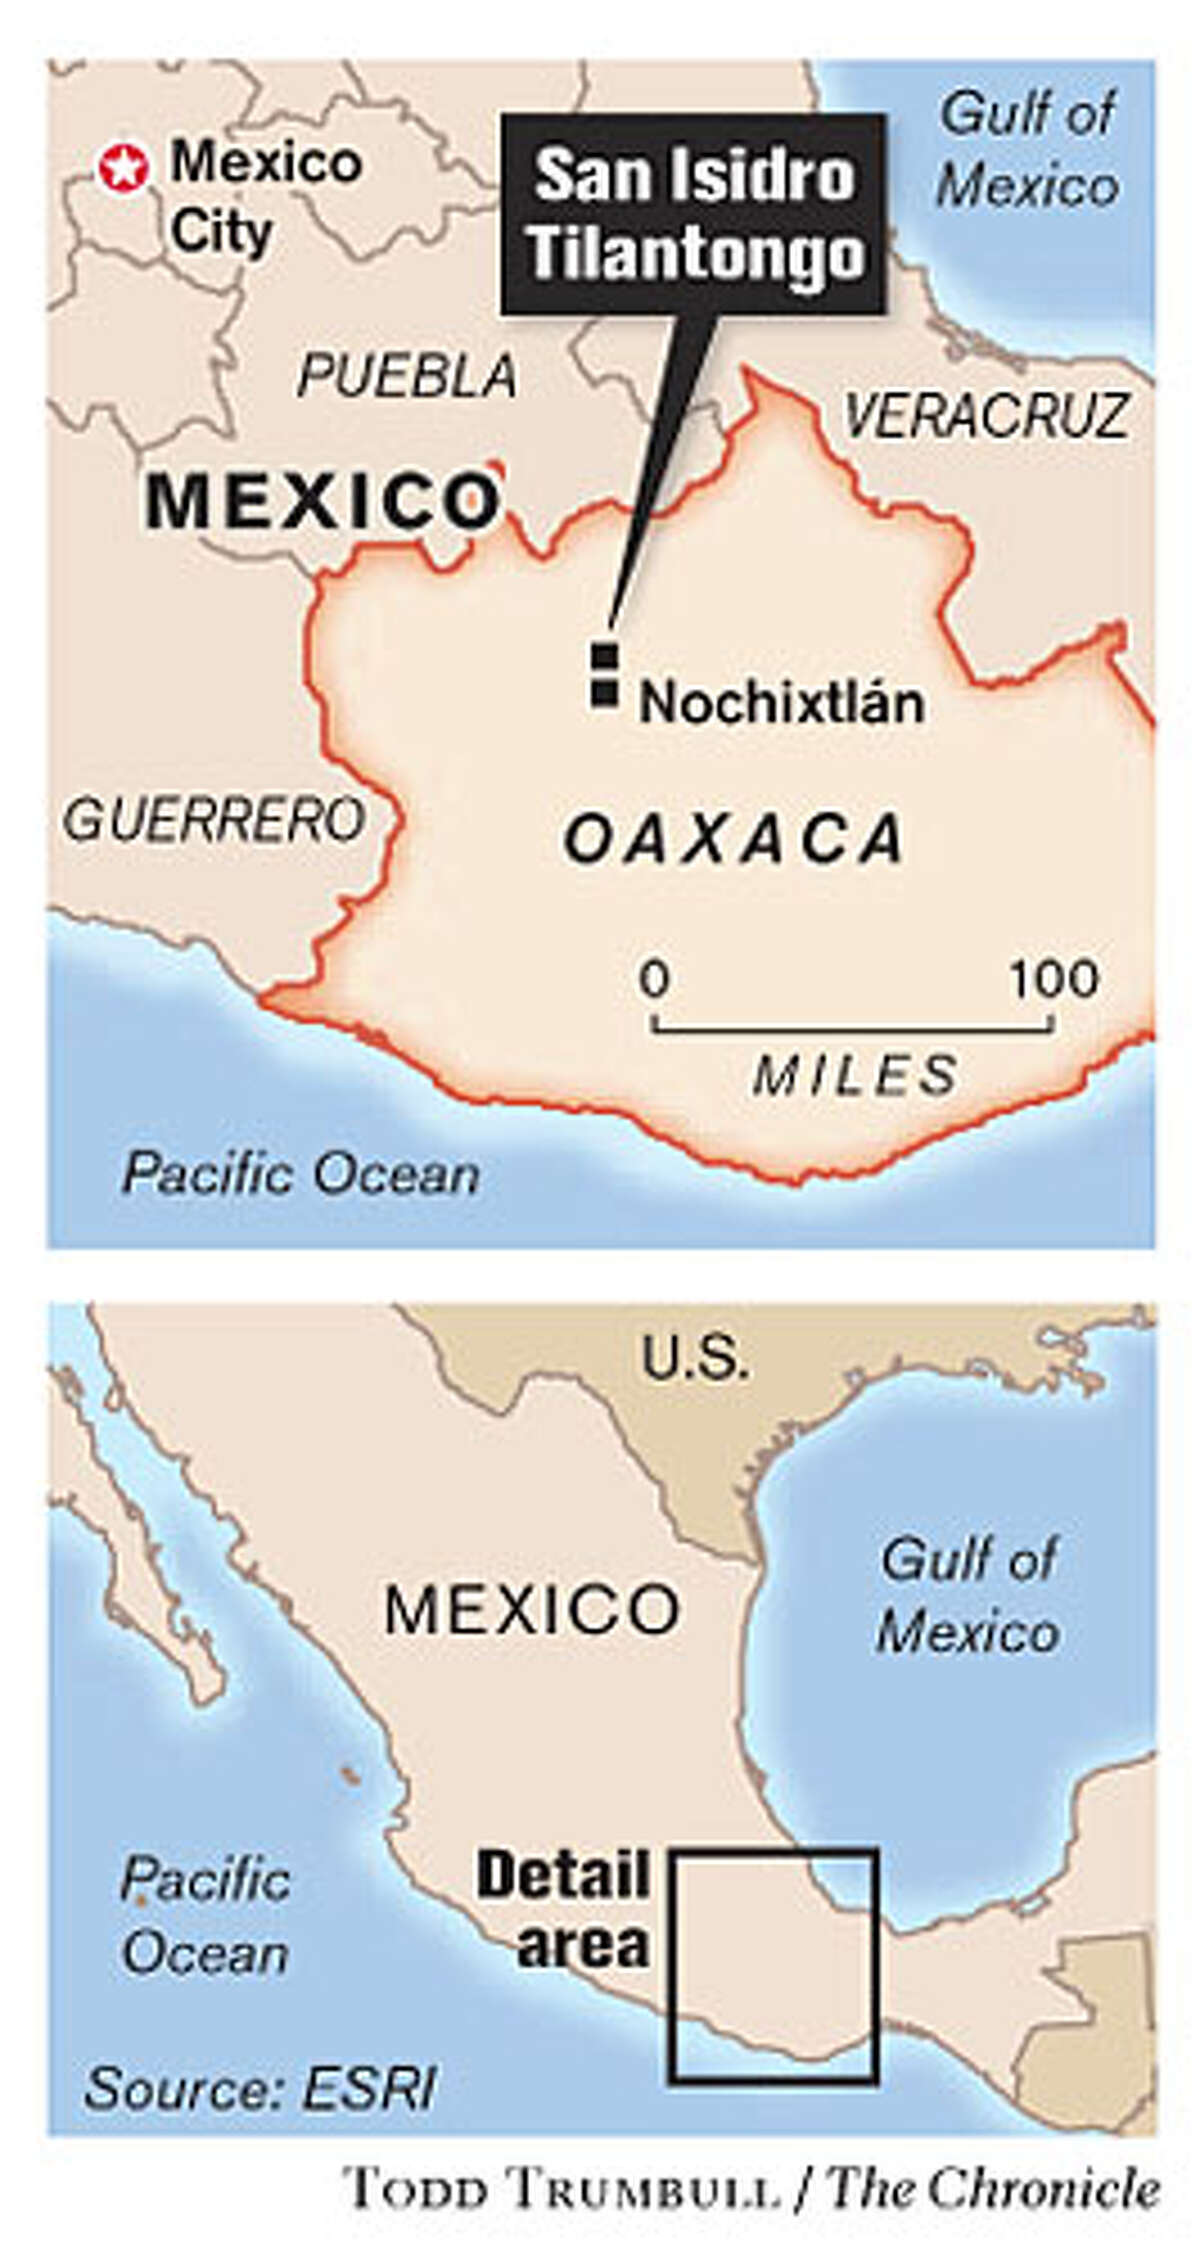 Oaxaca, Mexico. Chronicle graphic by Todd Trumbull